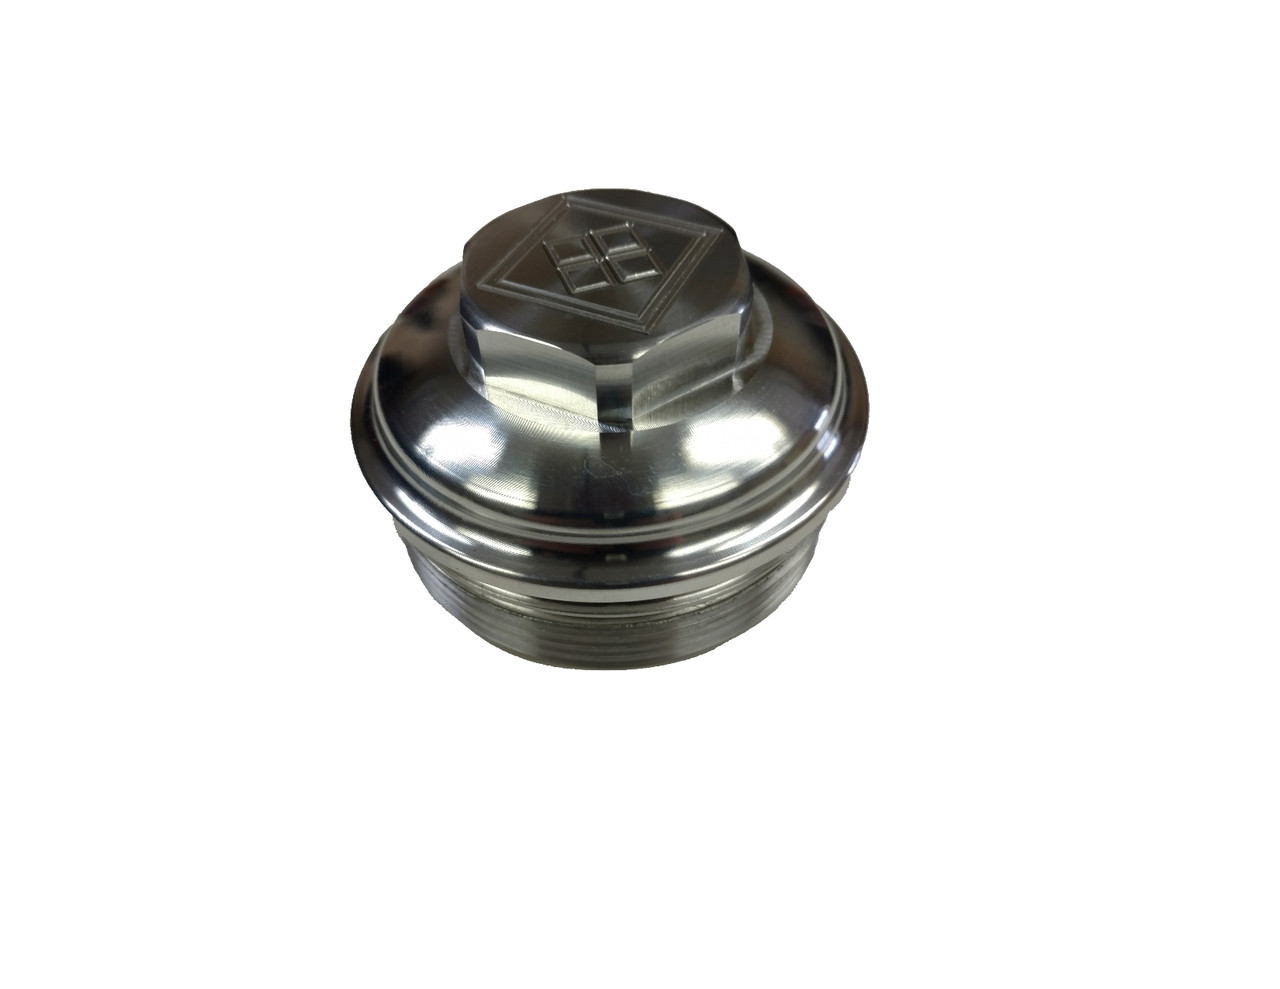 black diamond 2003 2007 6 0 powerstroke billet upper fuel filter cap [ 1280 x 989 Pixel ]